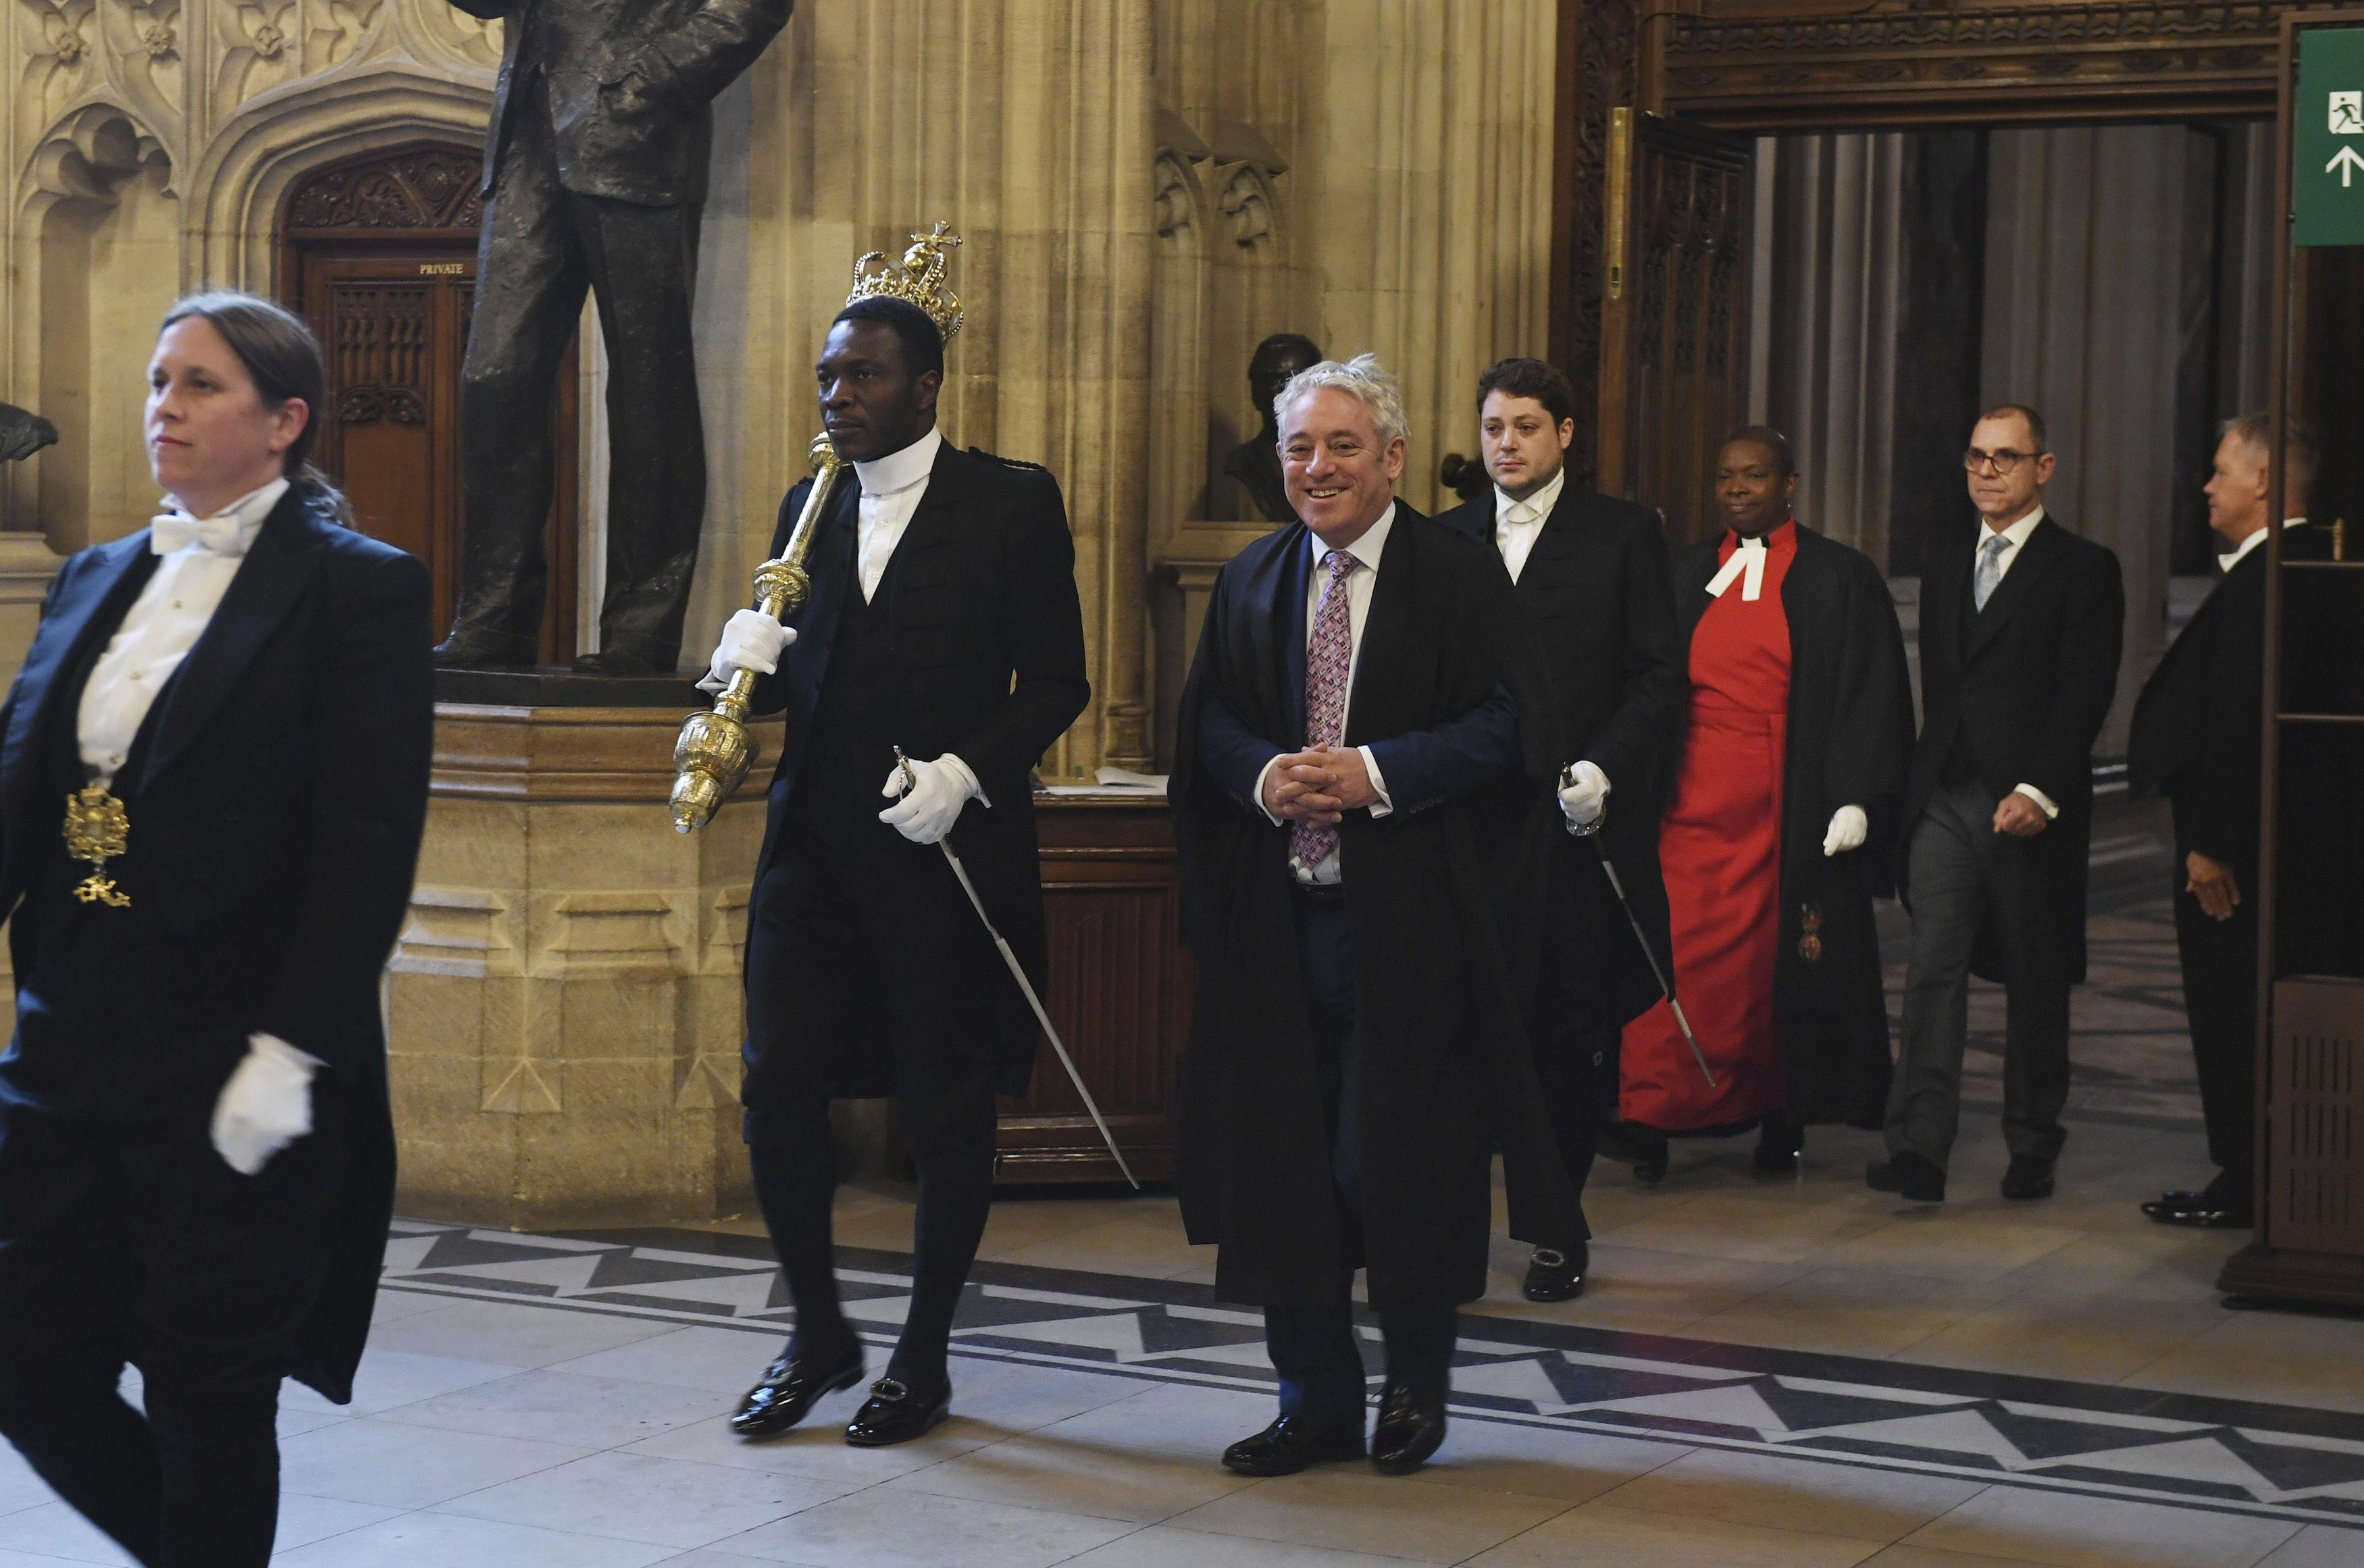 Final Or derrrs UK Commons speaker John Bercow bows out The 3500x2322